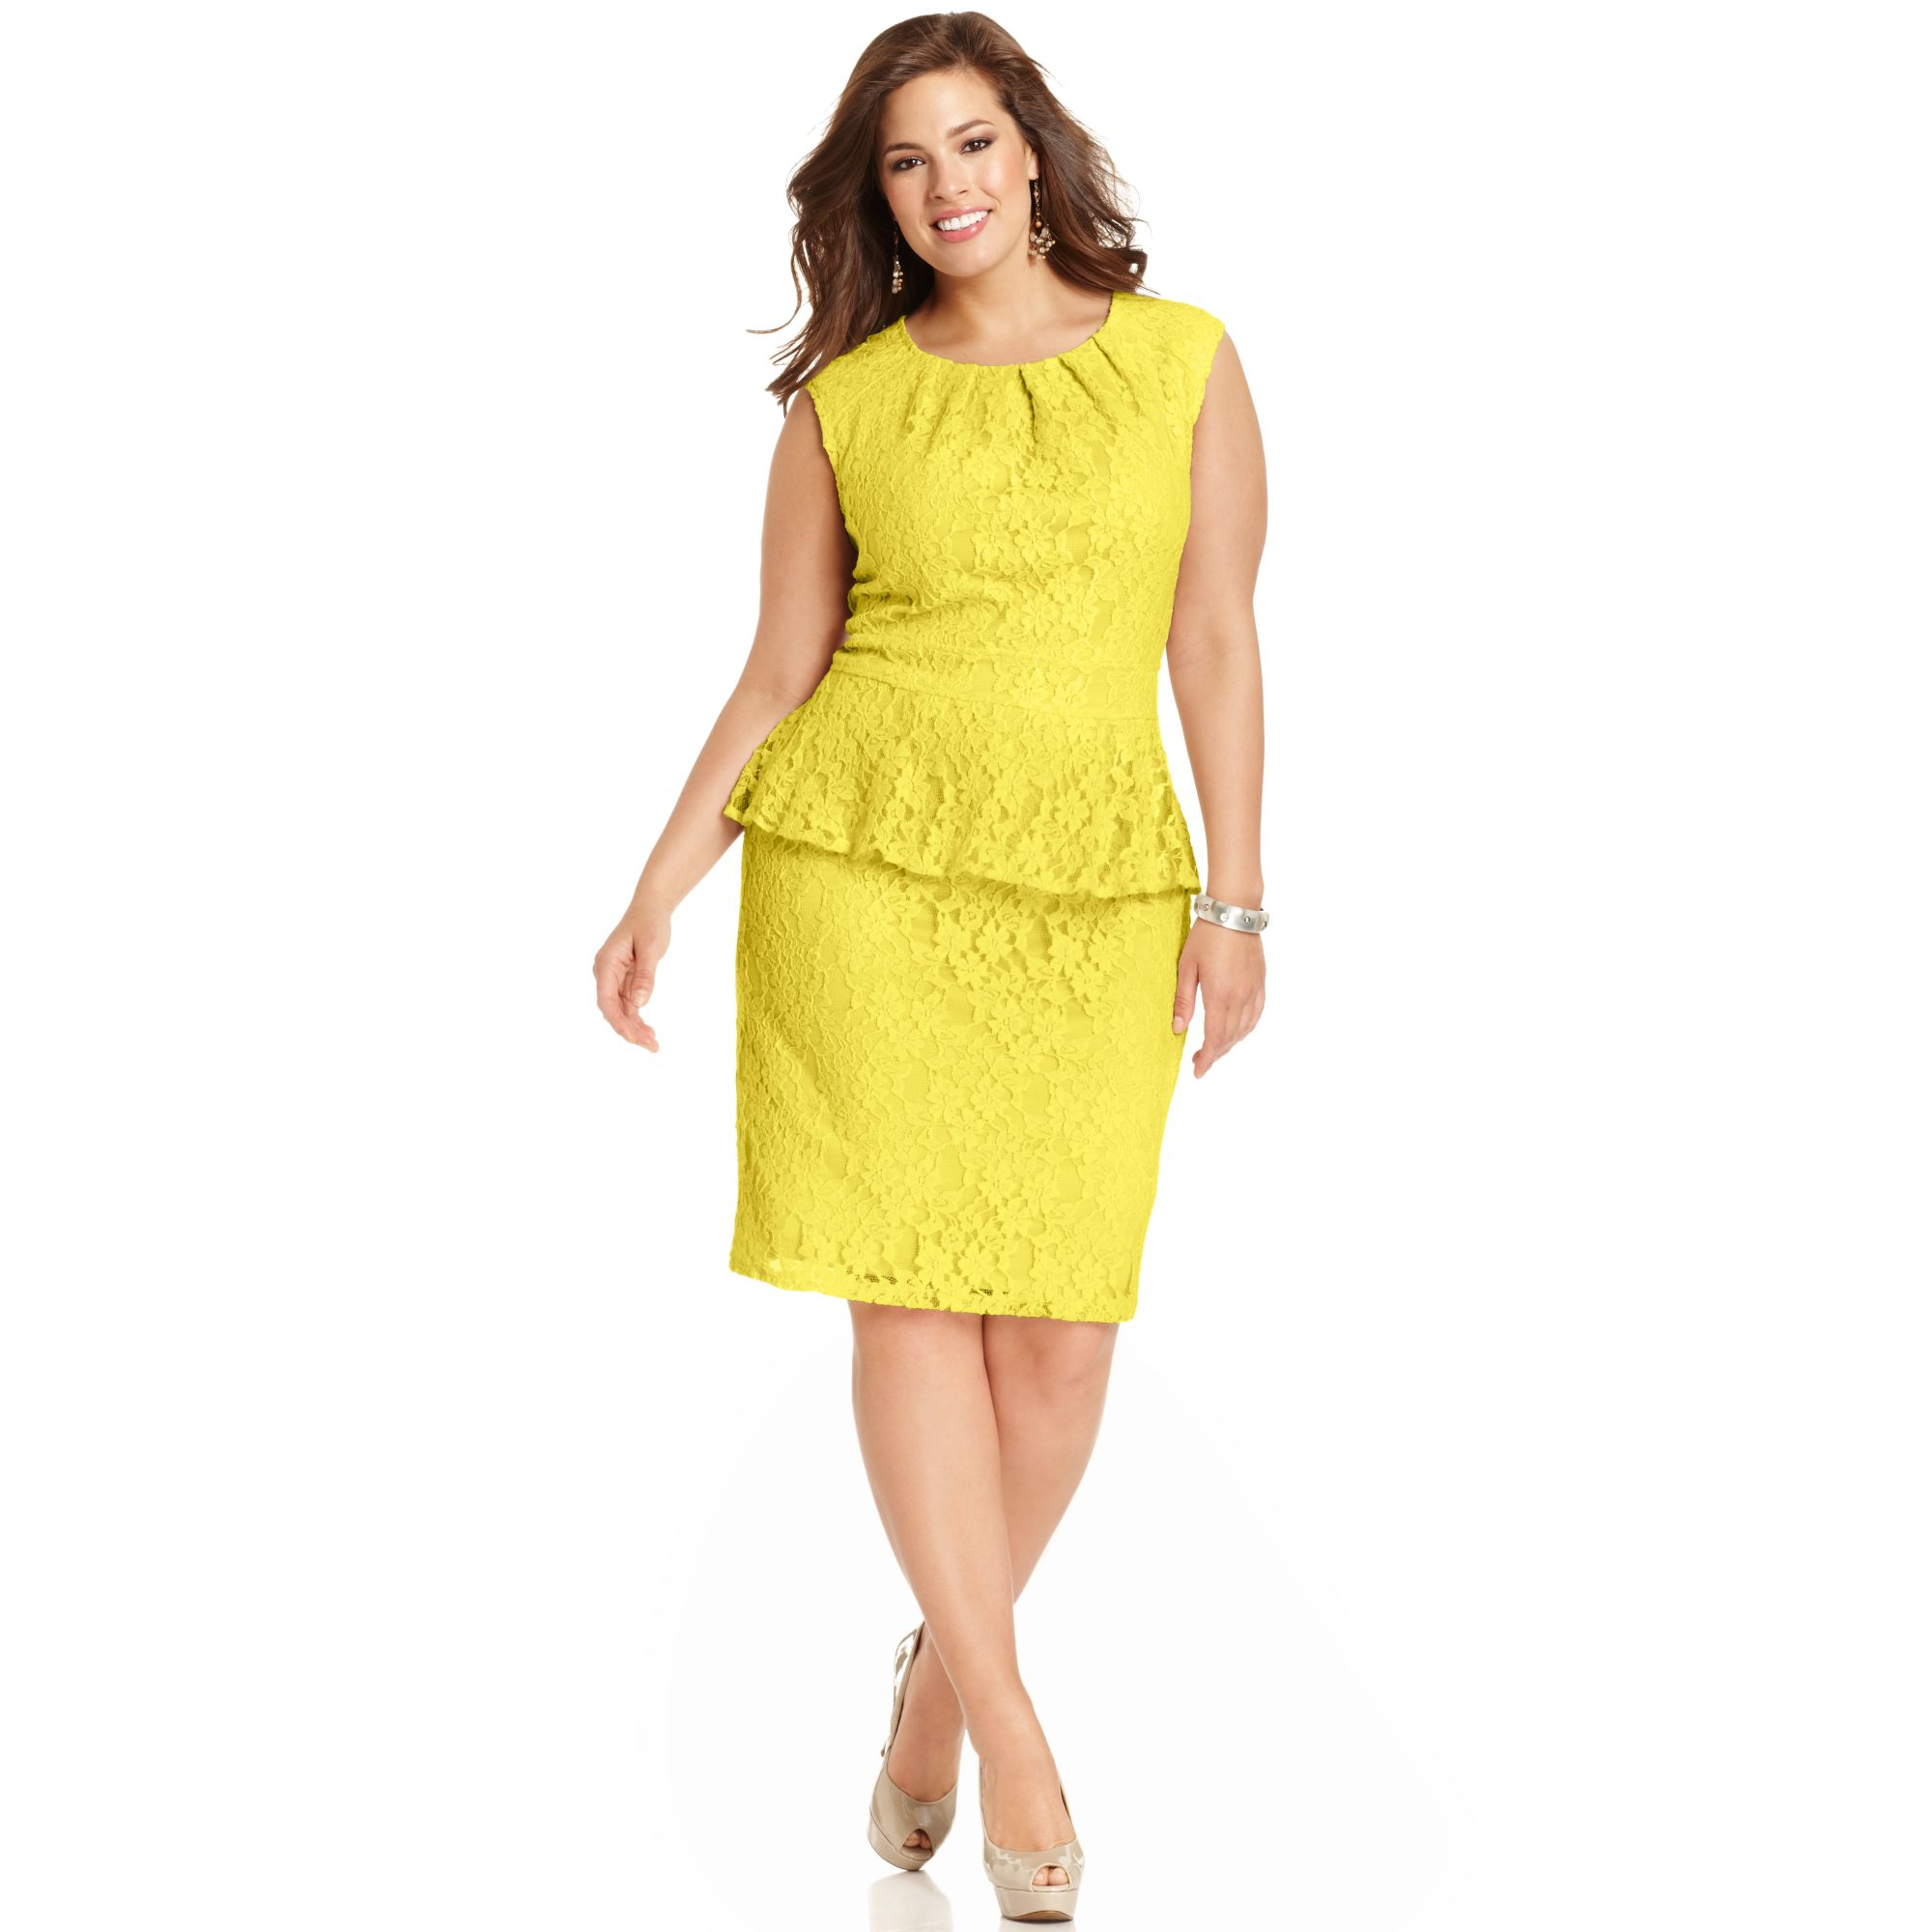 Spense Plus Size Capsleeve Lace Peplum Dress in Yellow | Lyst